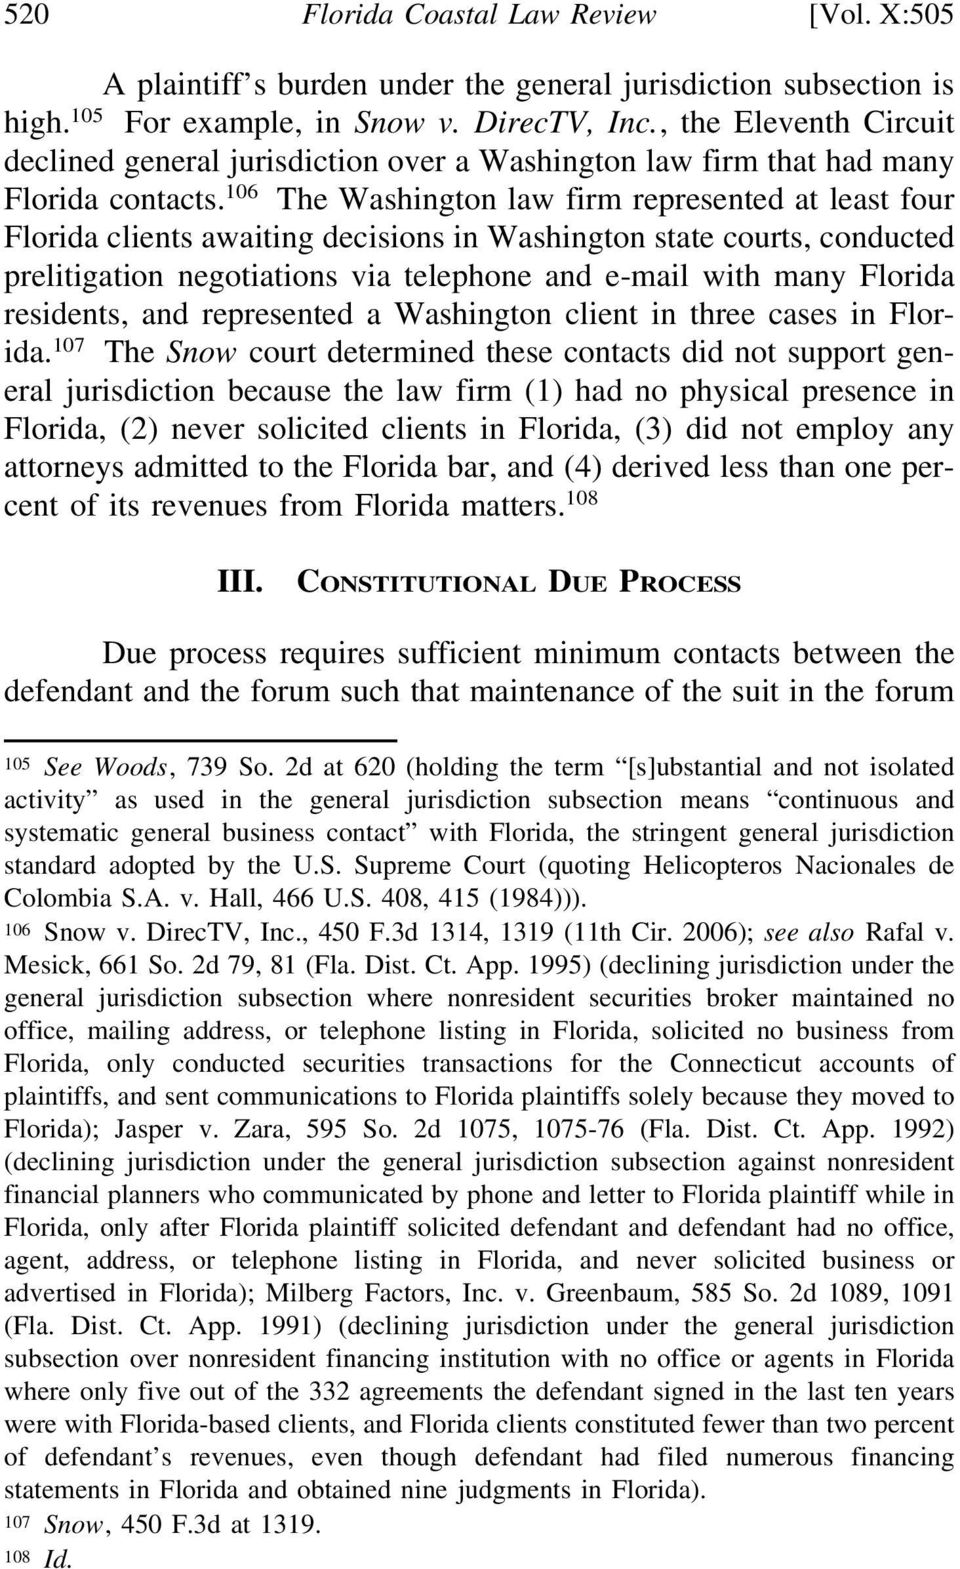 106 The Washington law firm represented at least four Florida clients awaiting decisions in Washington state courts, conducted prelitigation negotiations via telephone and e-mail with many Florida